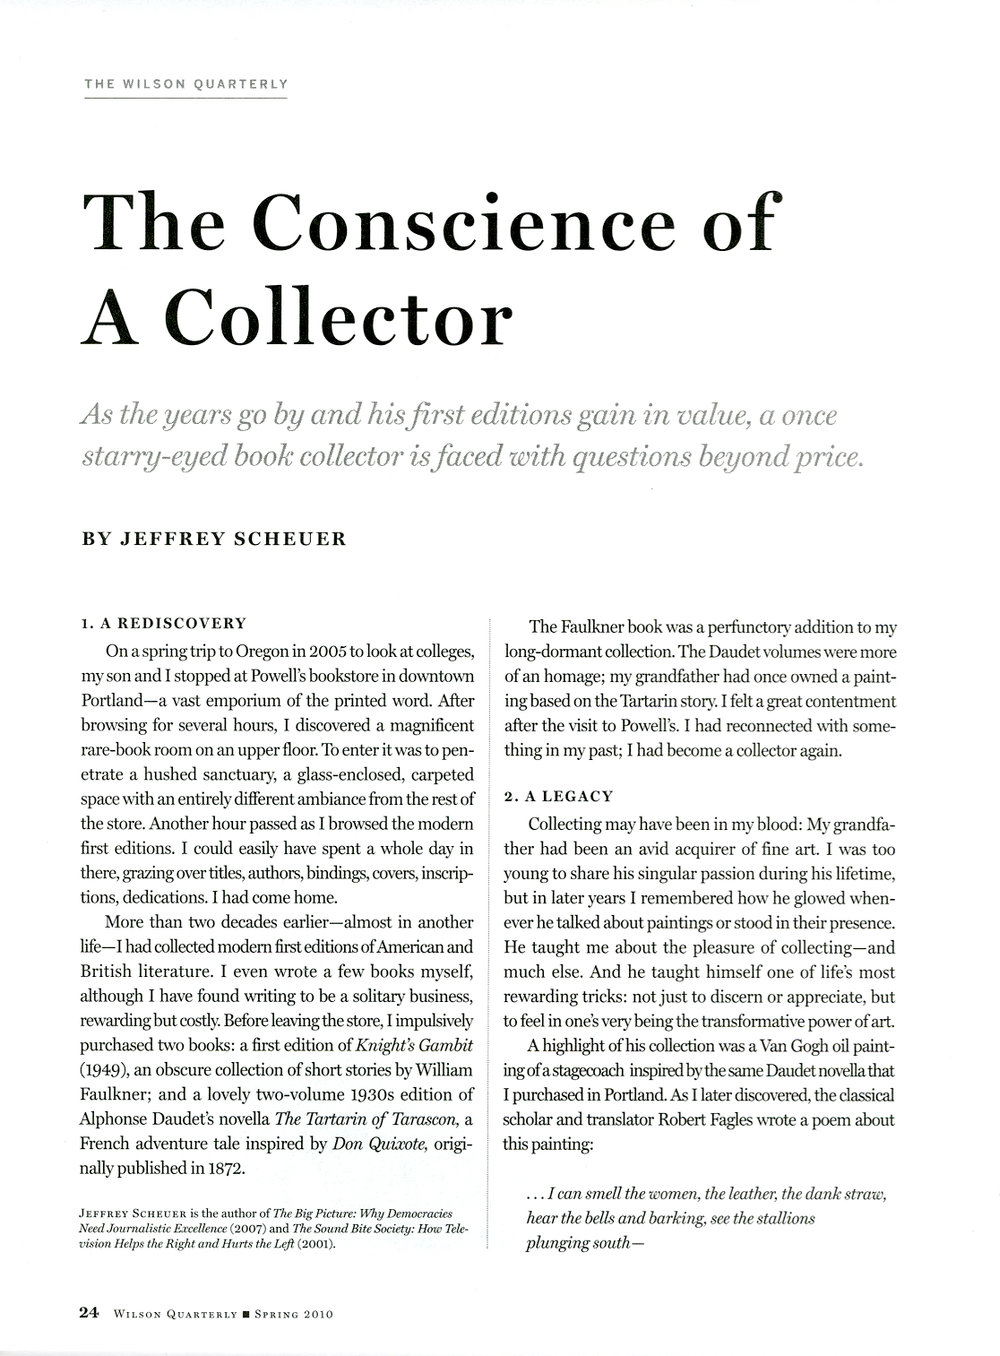 Conscience of a Collector0001FULL copy.jpg